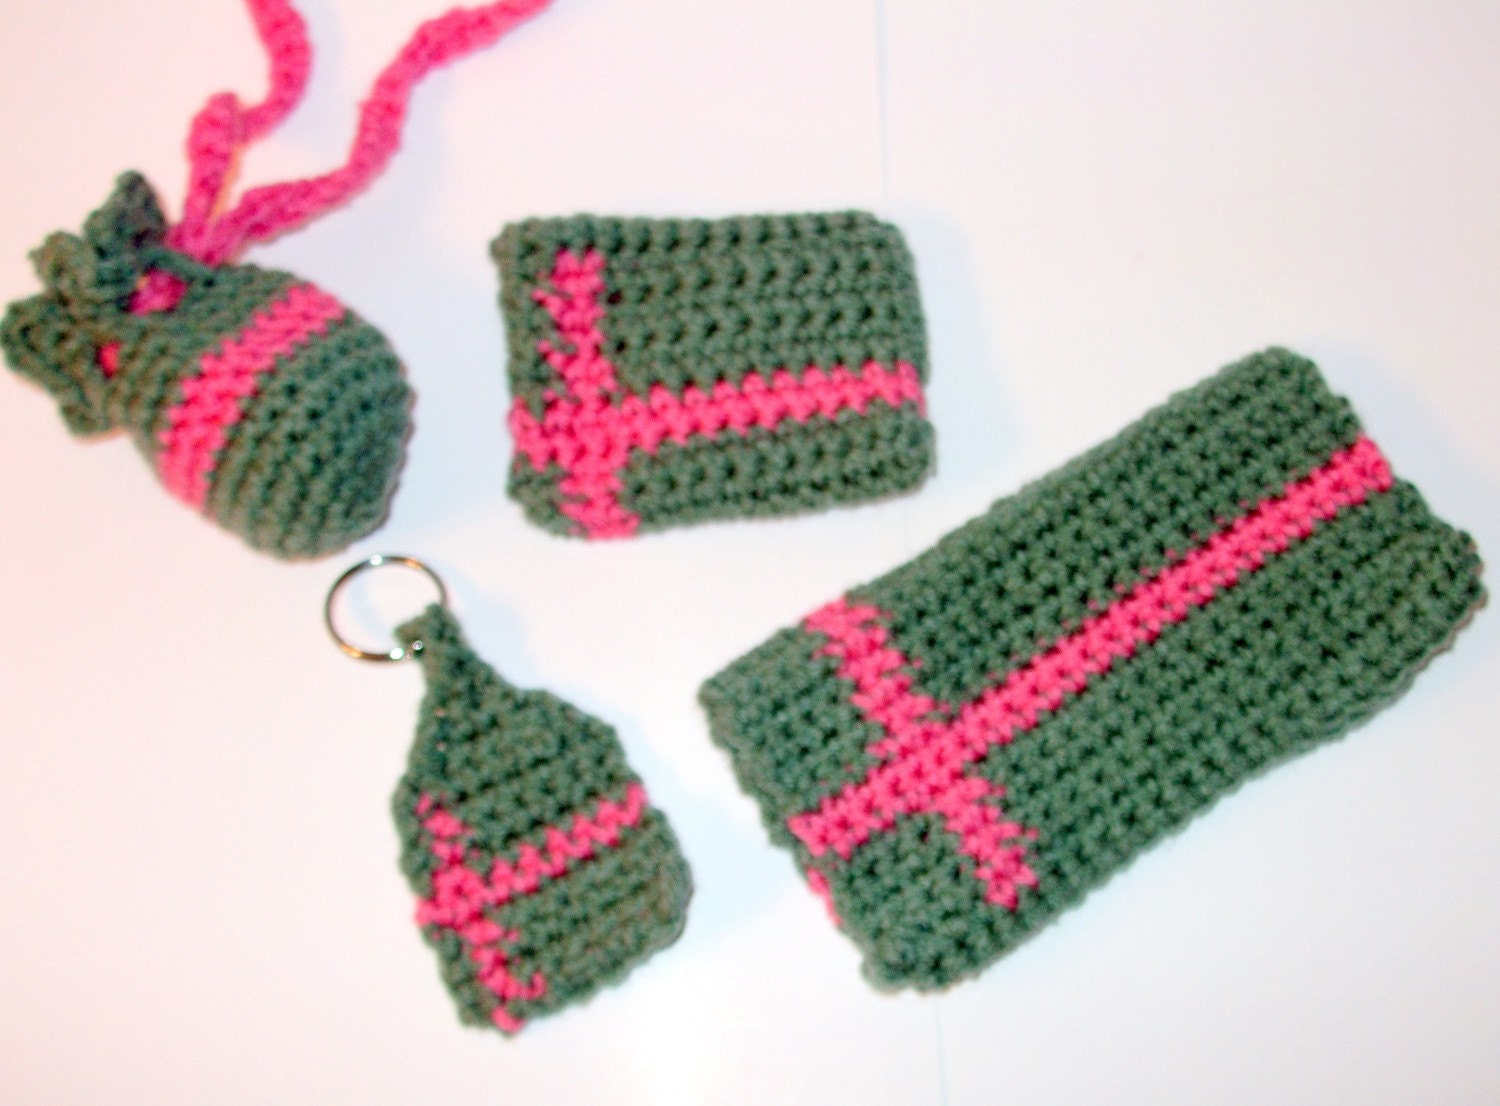 Crochet Coin Purse Pattern @Craftzine.com blog